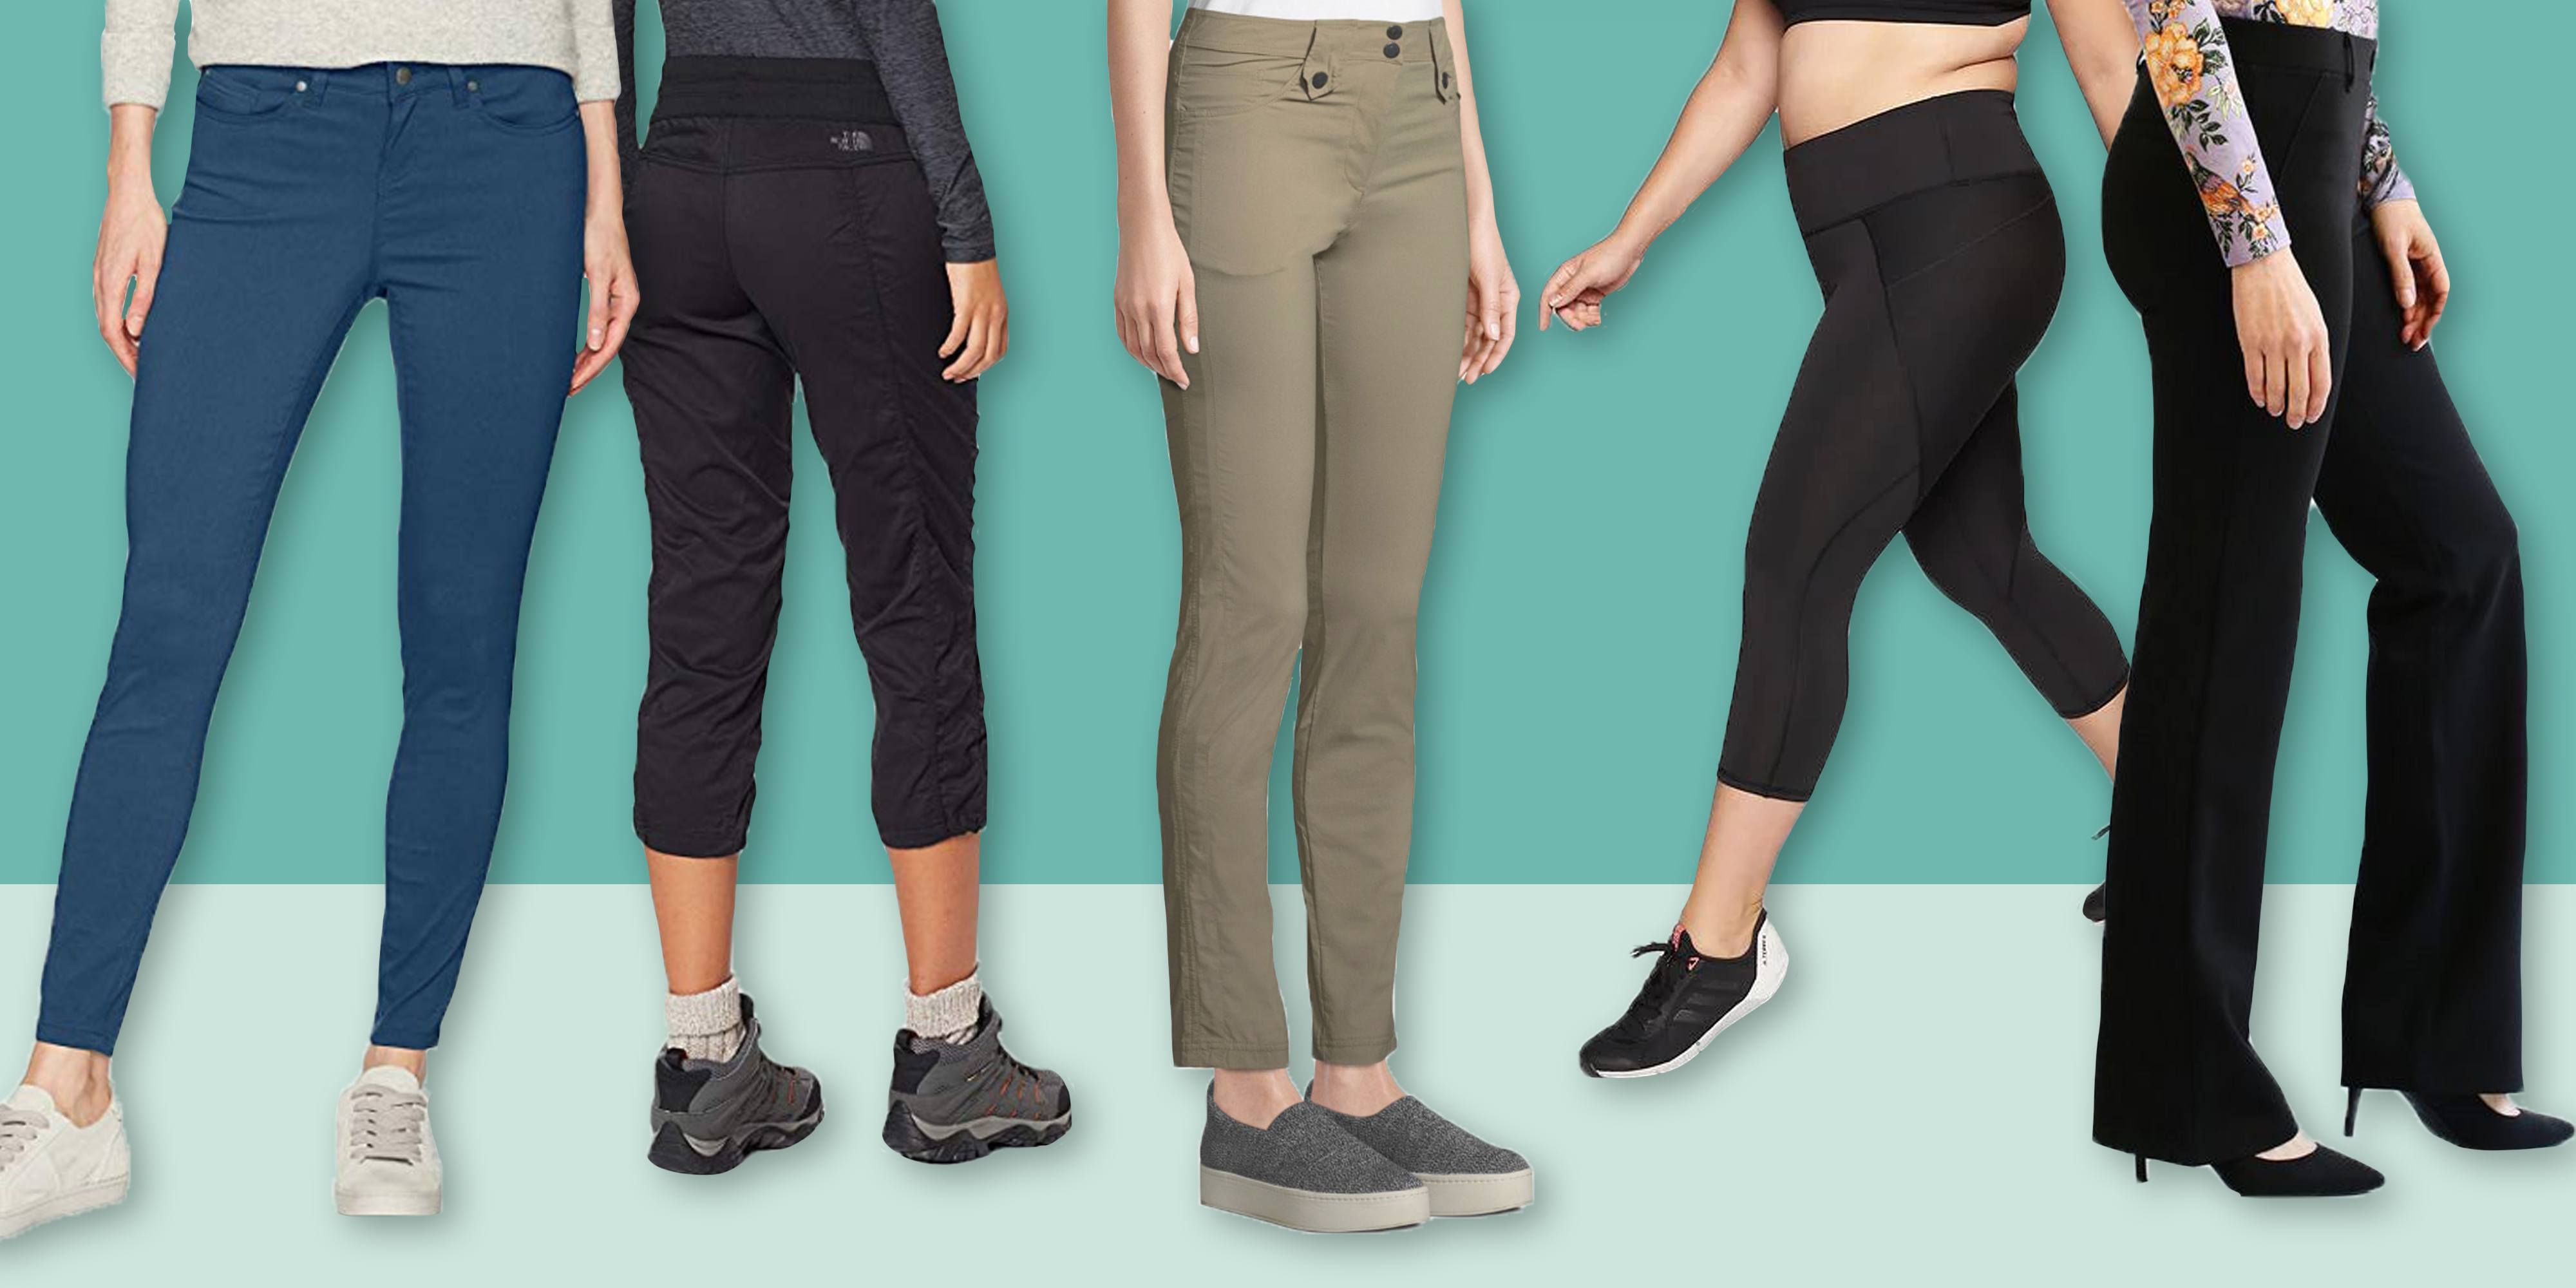 The 8 Best Travel Pants for When You Want Comfort and Style